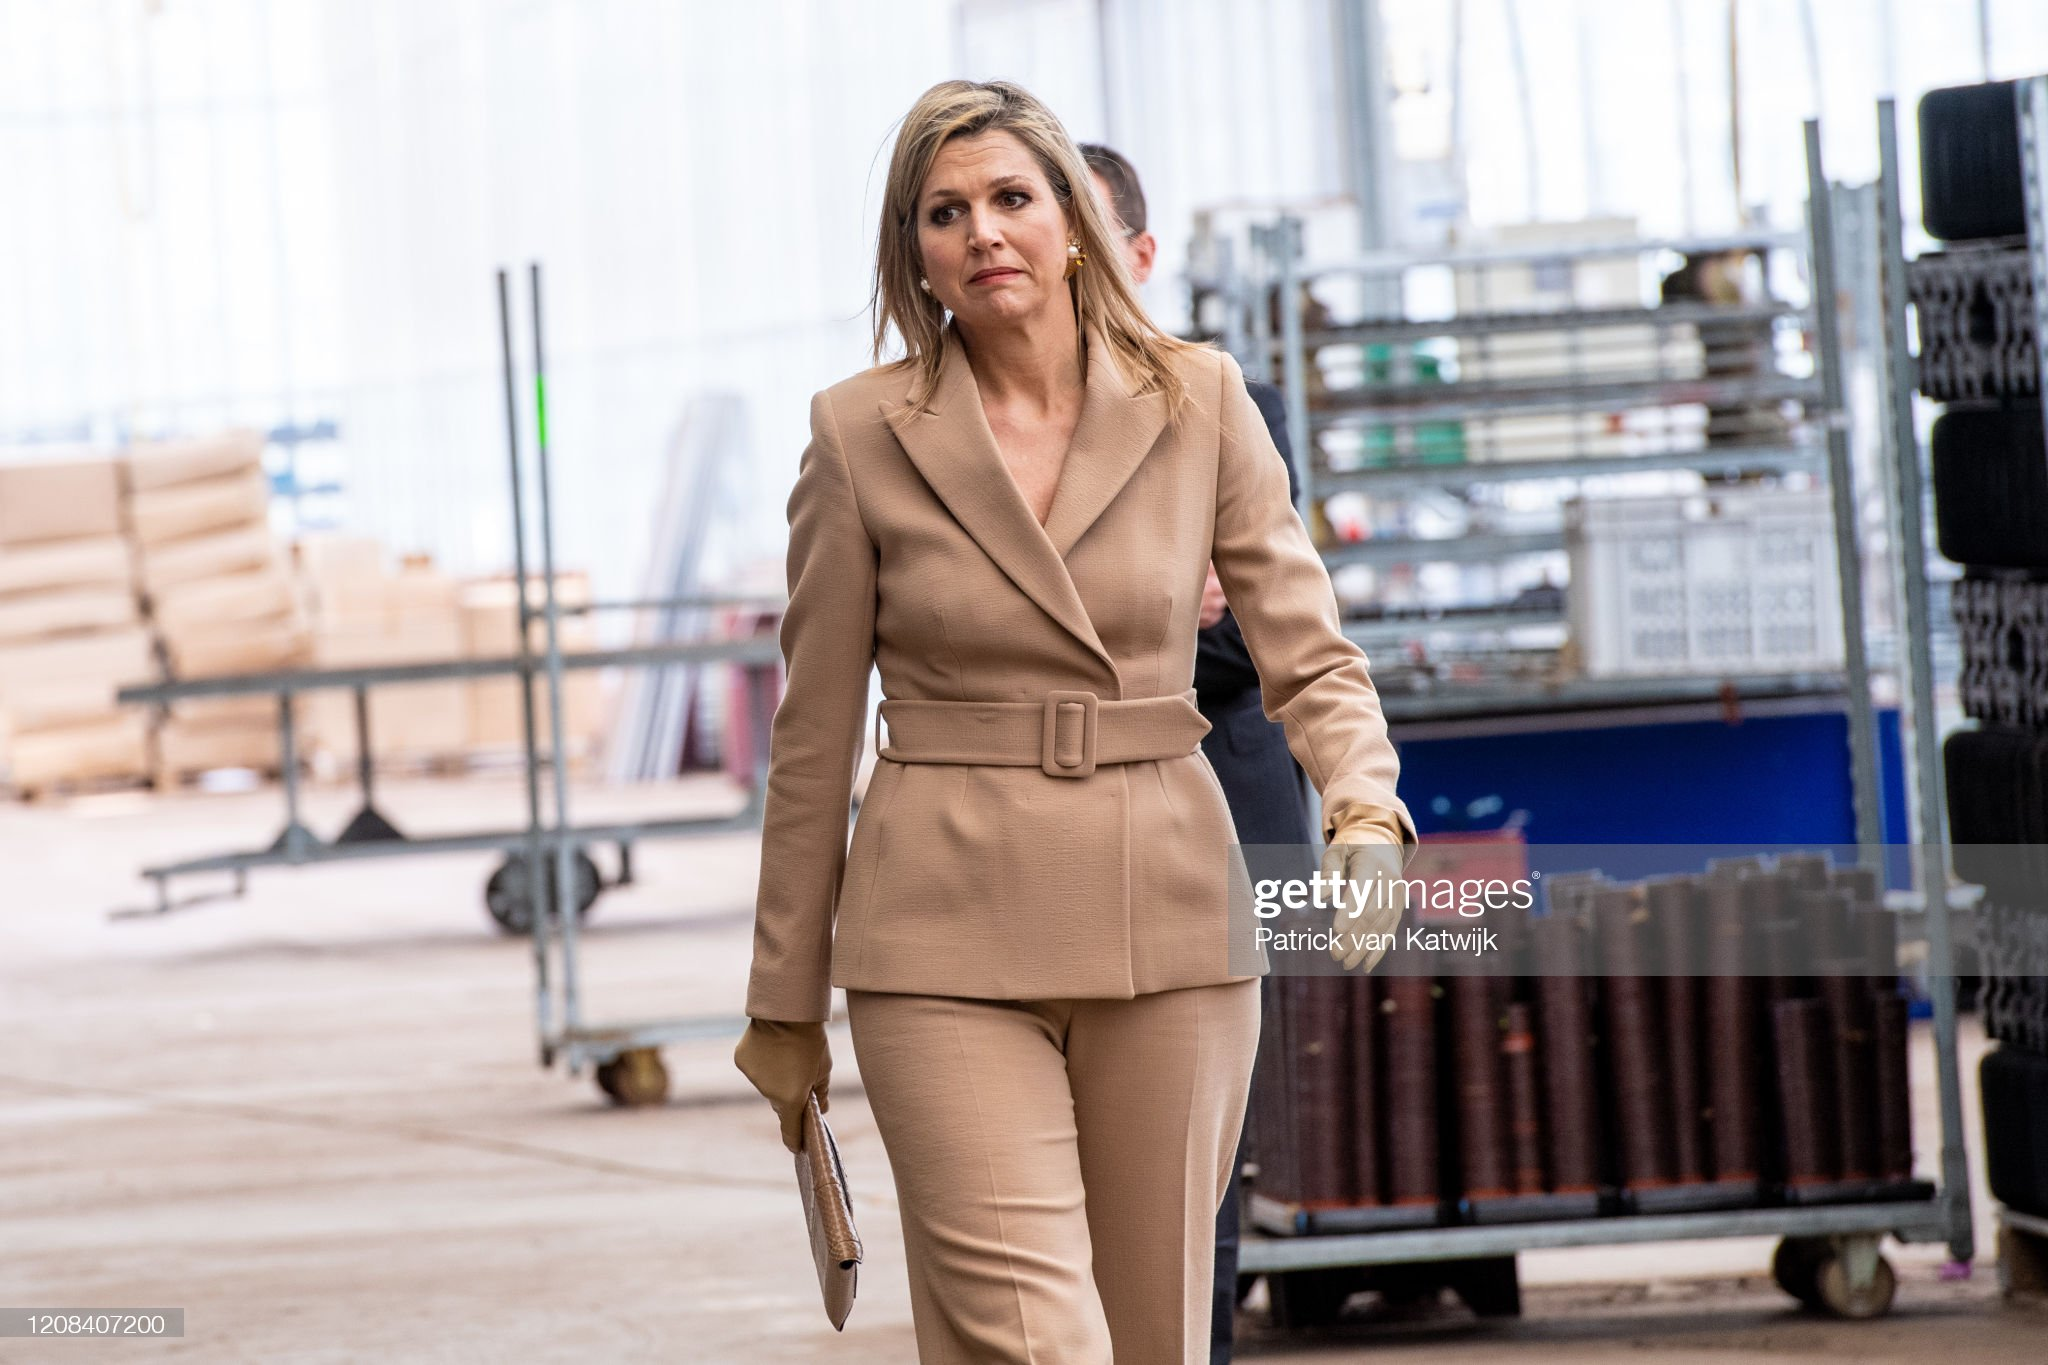 https://media.gettyimages.com/photos/queen-maxima-of-the-netherlands-visits-zuidbaak-floriculture-company-picture-id1208407200?s=2048x2048